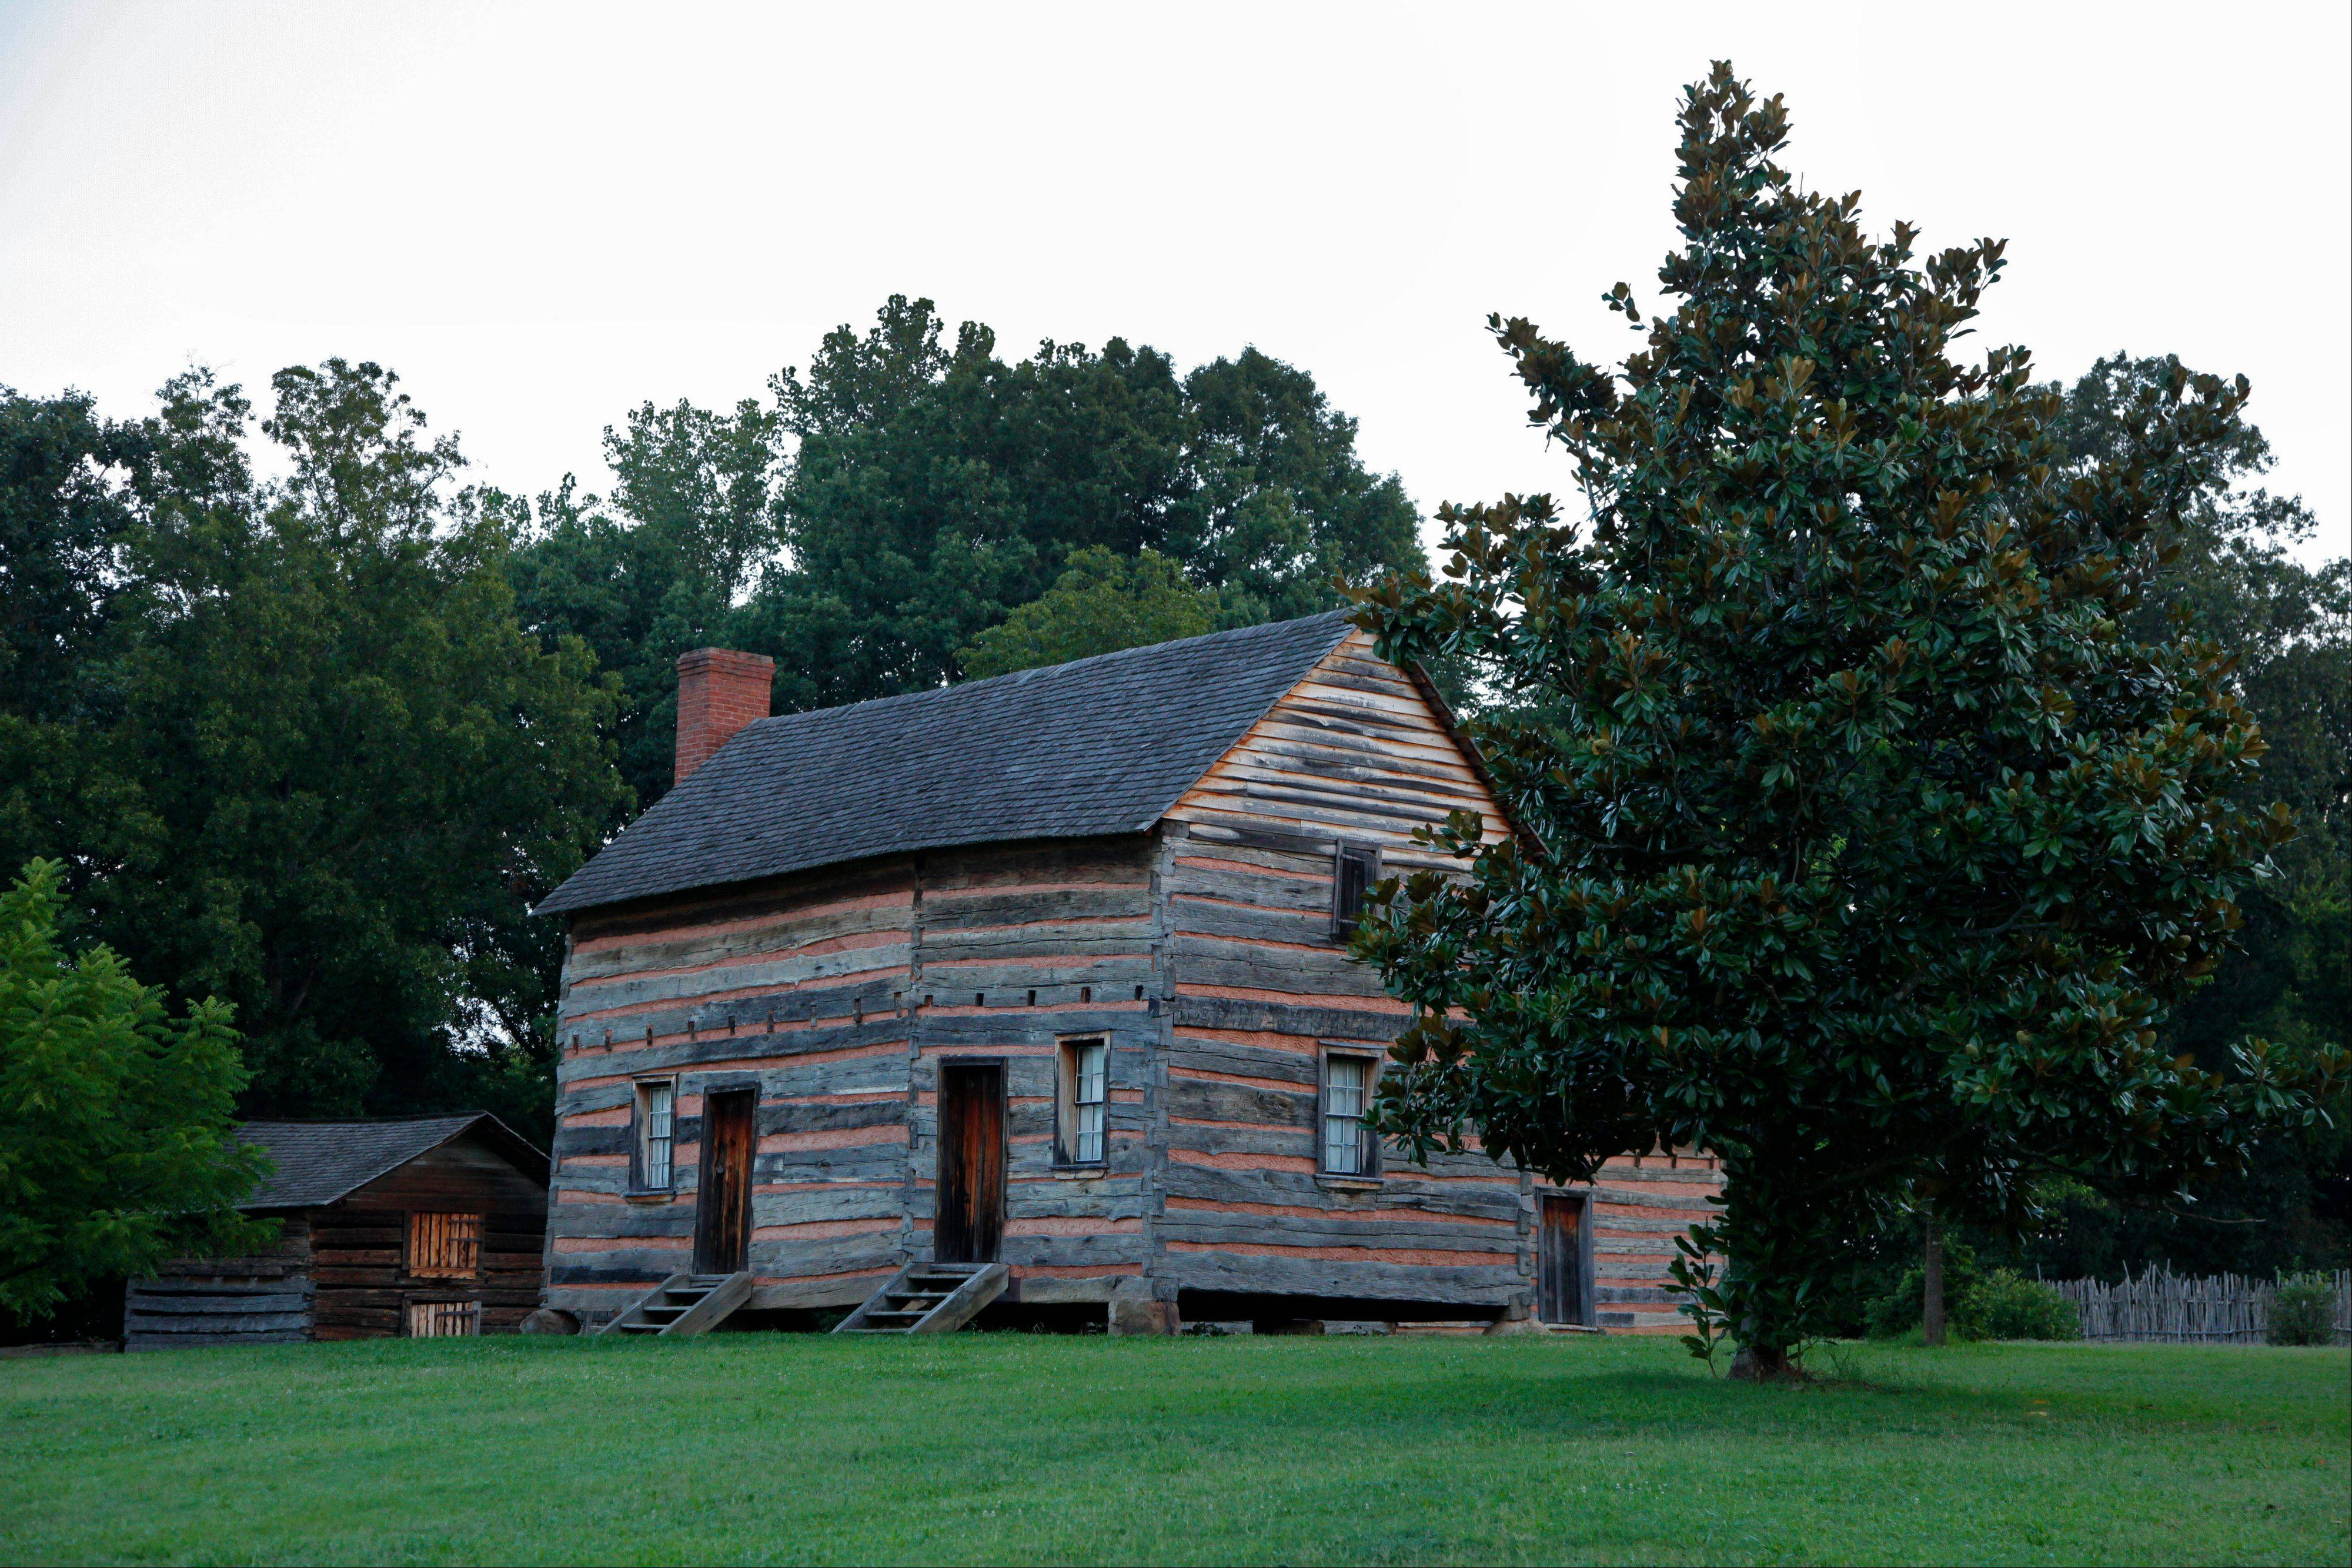 The birthplace of President James K. Polk is shown in Pineville, N.C.